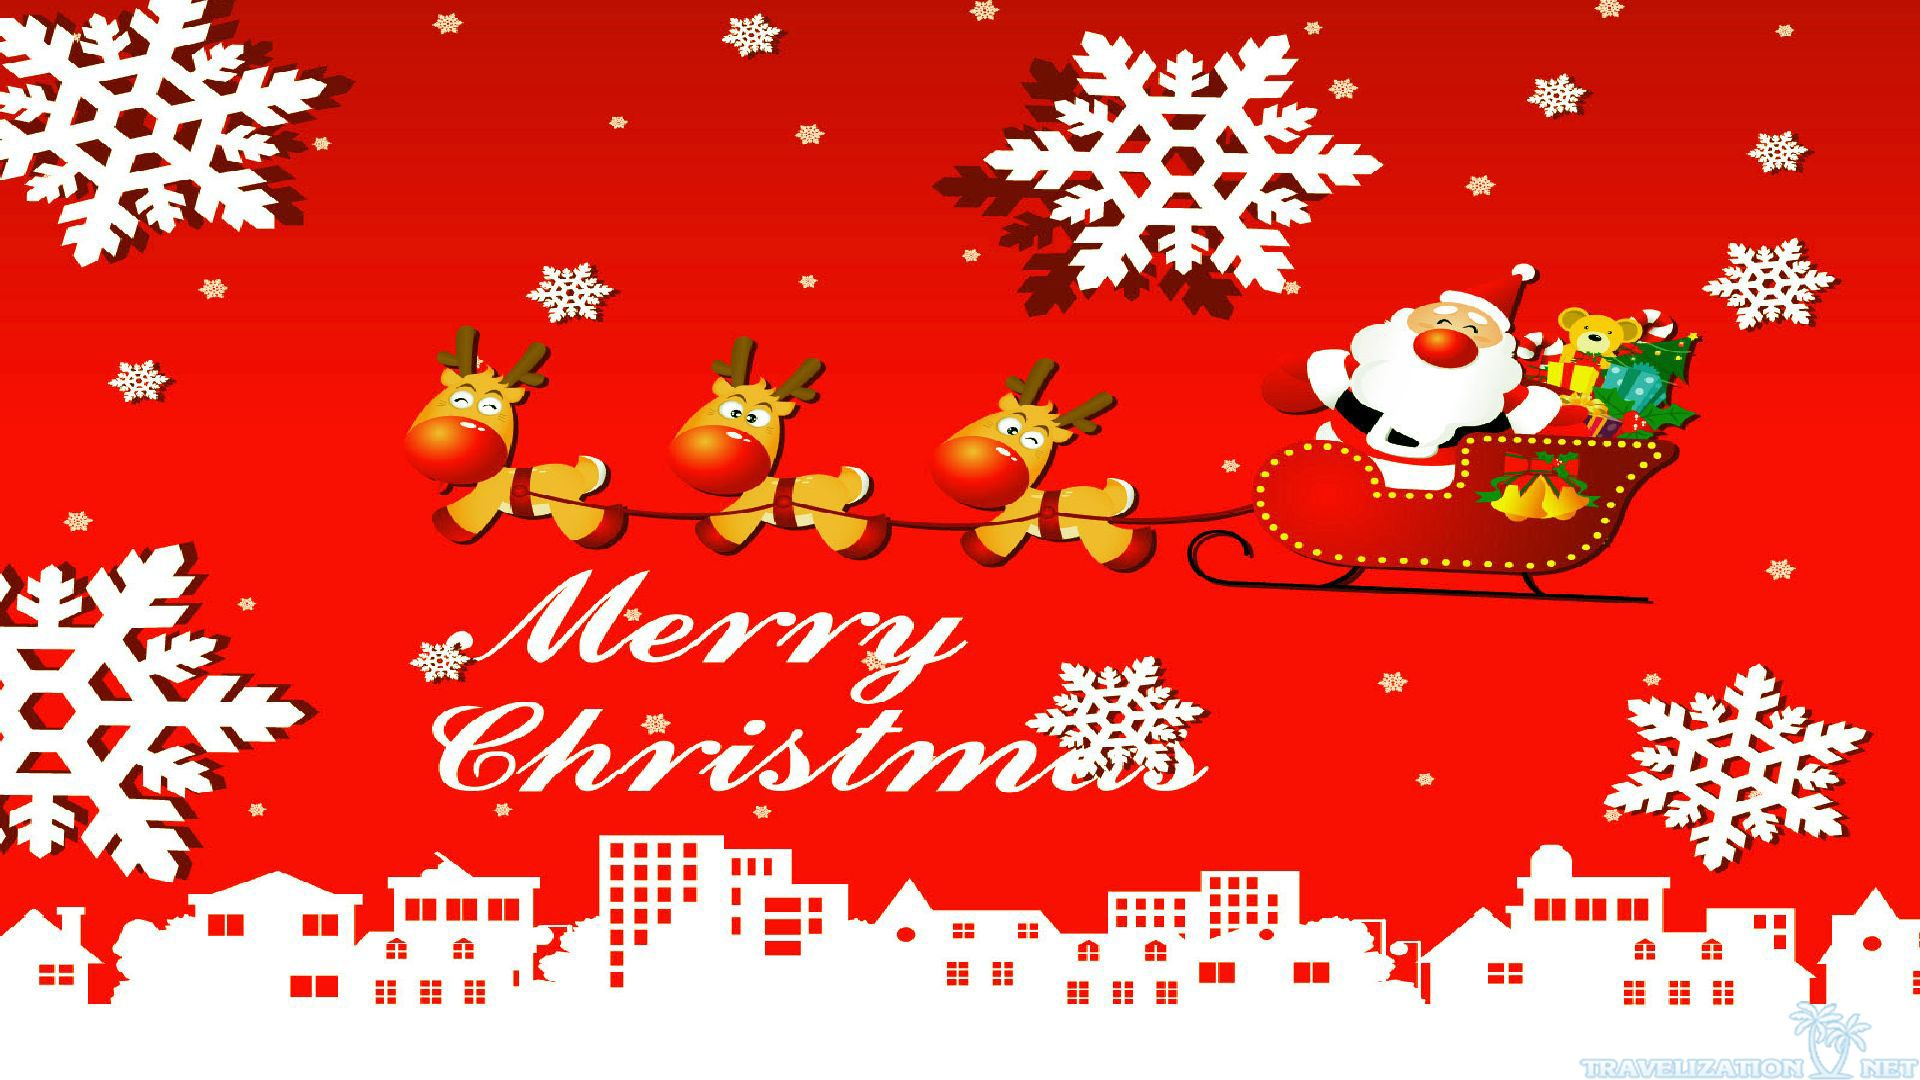 Free Download Cute Merry Christmas Image Wallpaper 7460